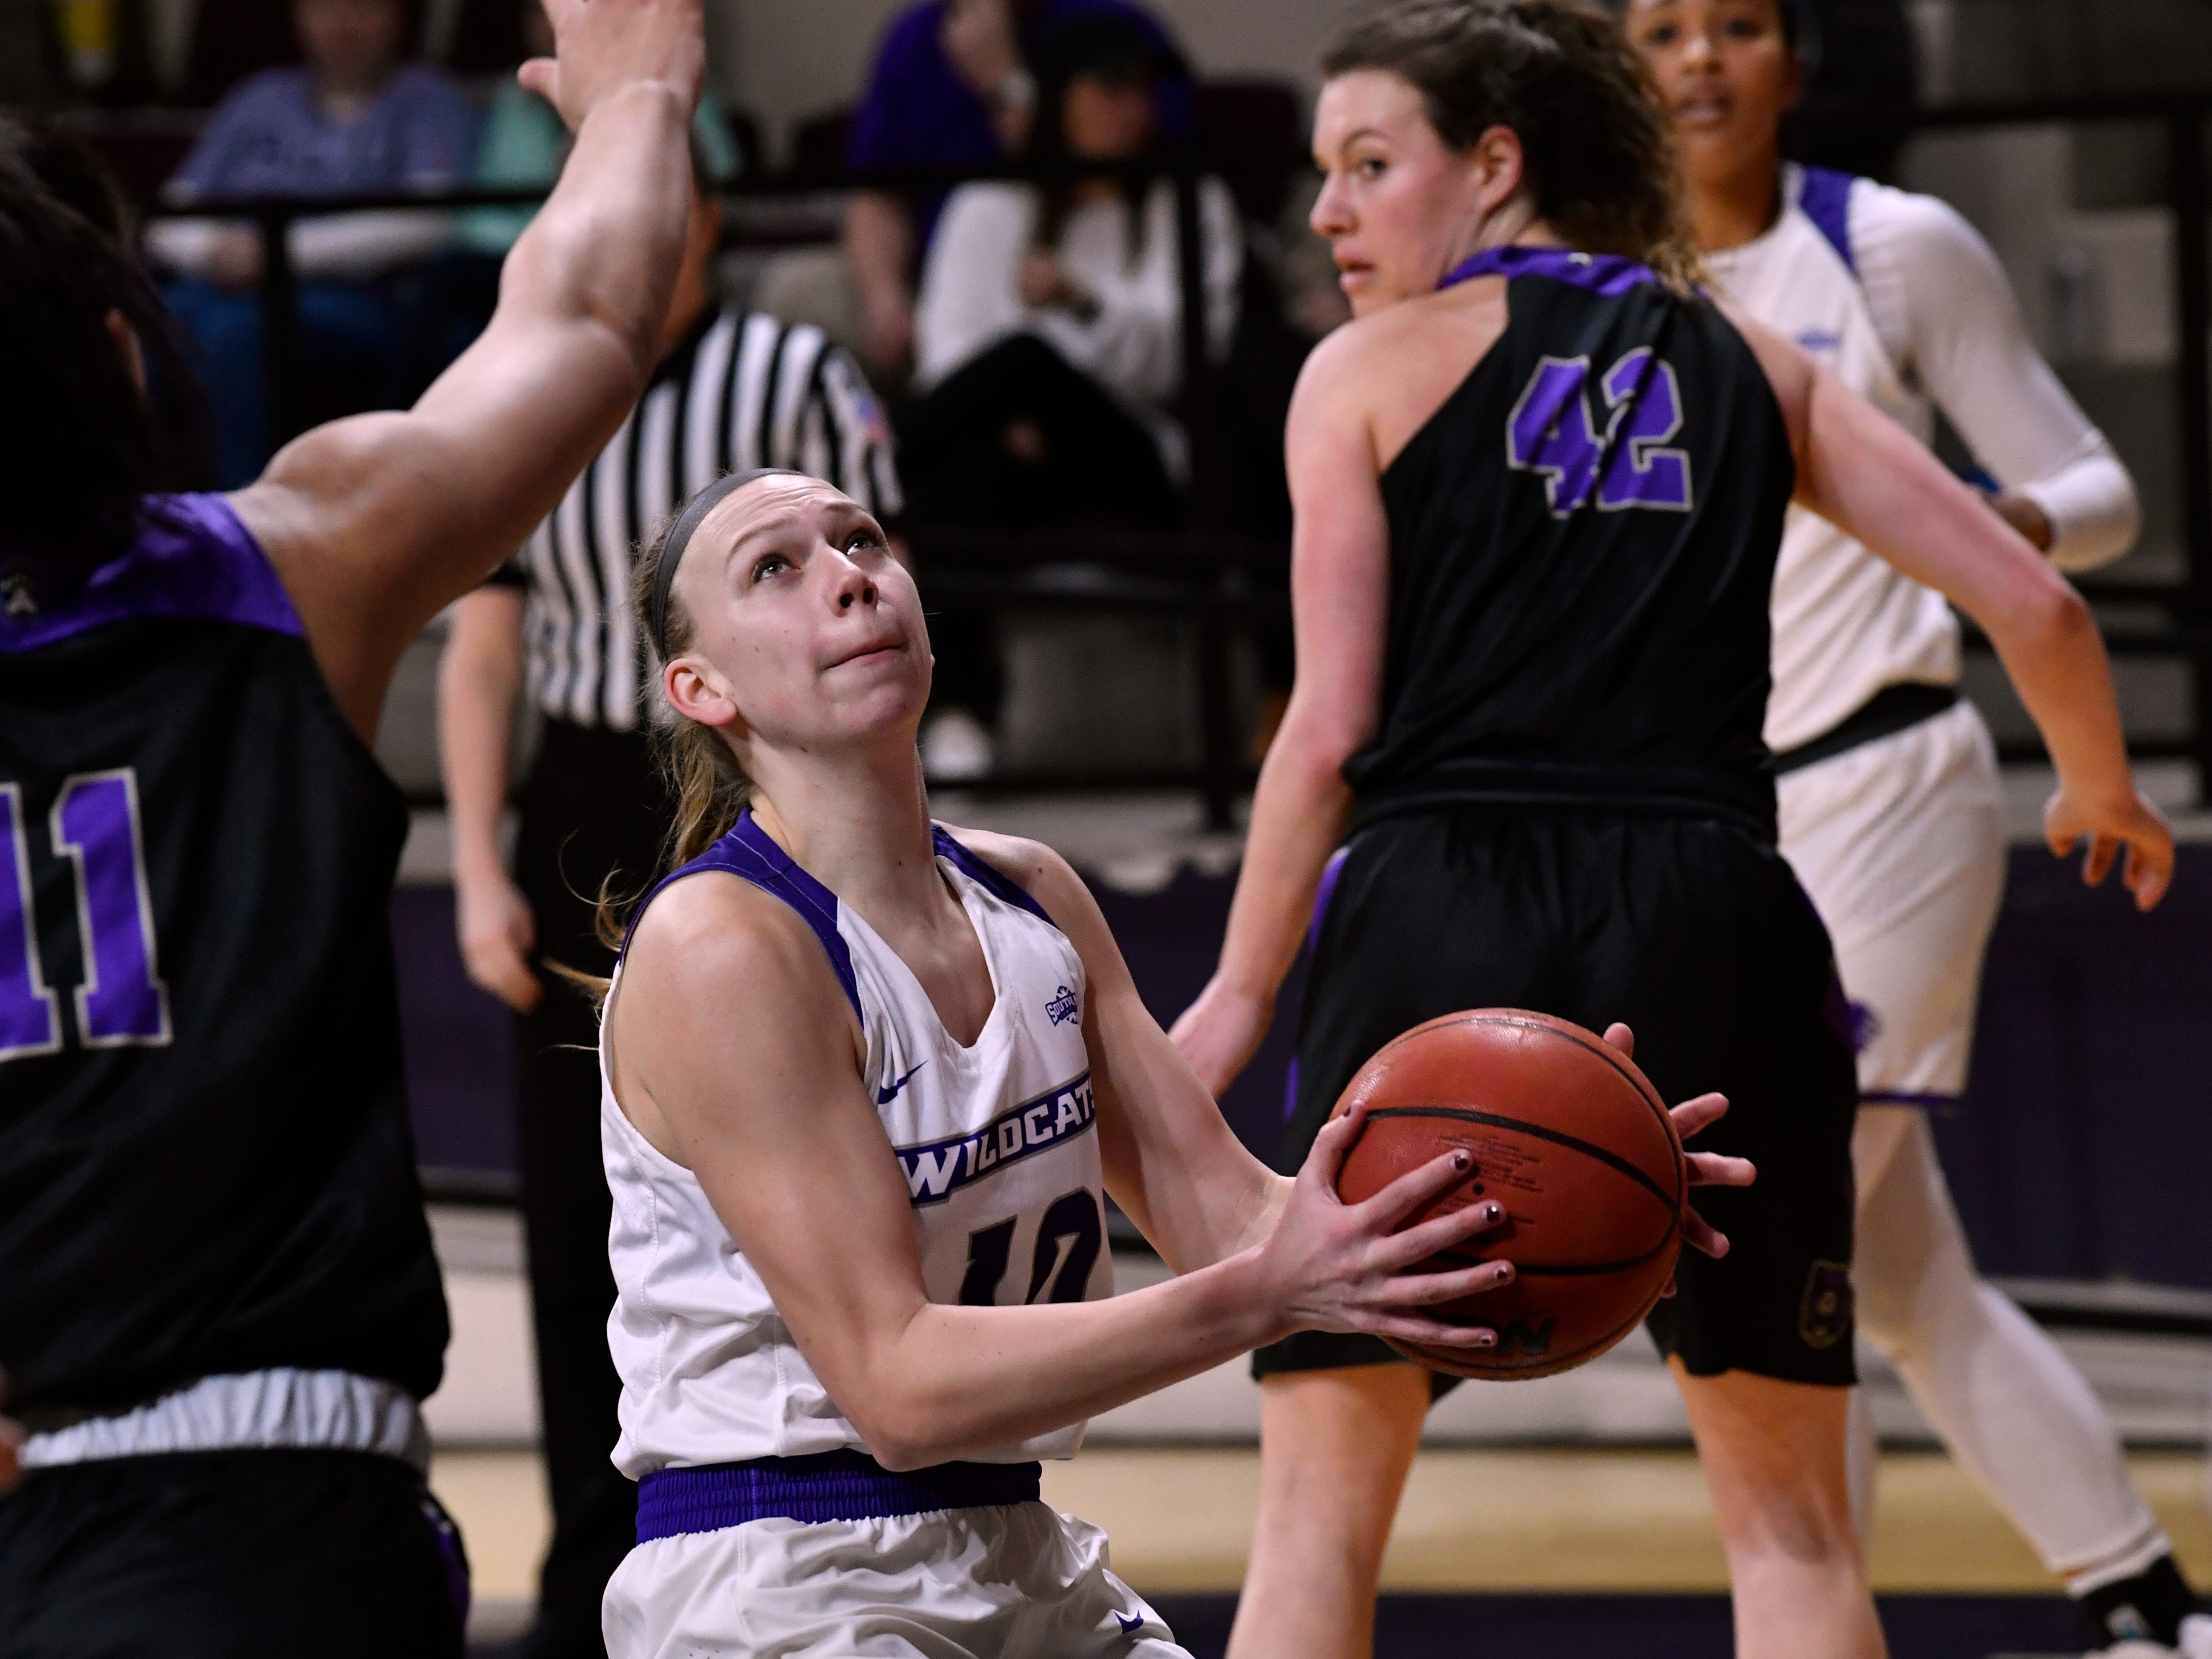 Breanna Wright sets herself for a basket during Abilene Christian University's women's basketball game against Central Arkansas Saturday Jan. 26, 2019. Final score was 77-70, ACU.